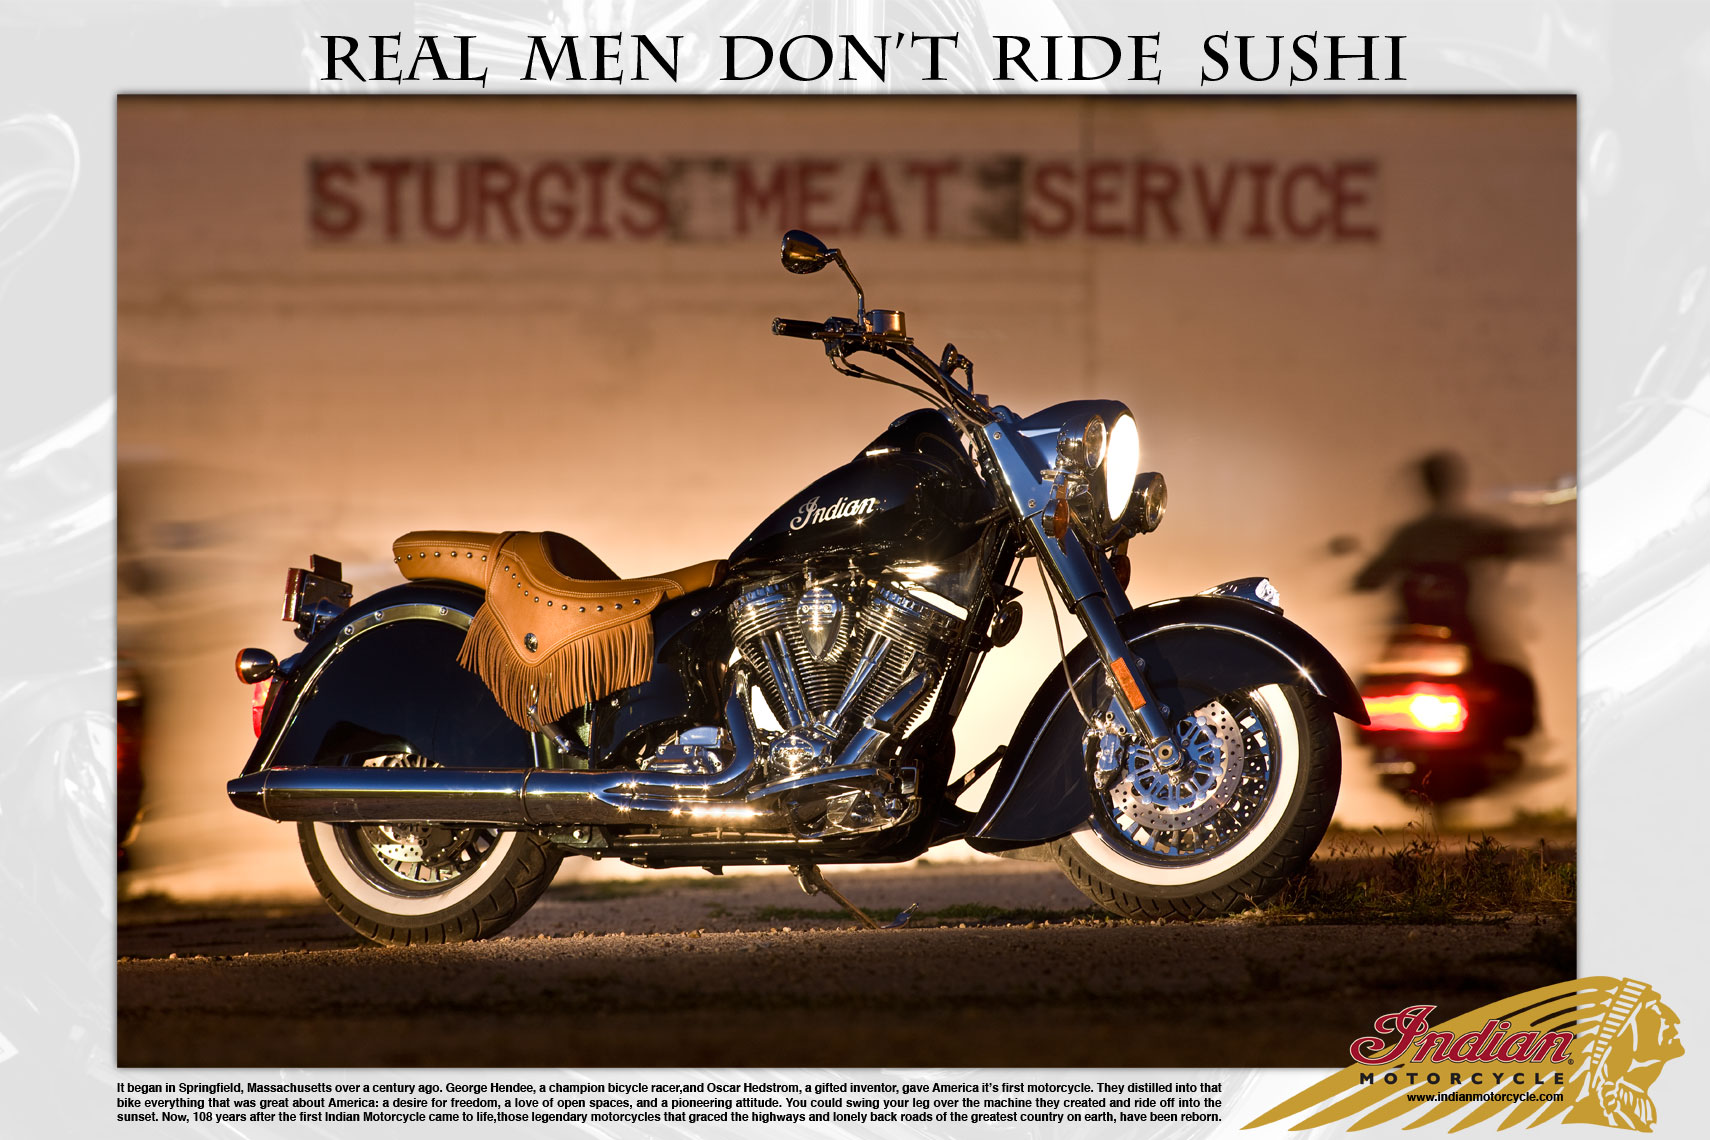 6-Real-Men-Dont-Ride-Sushi